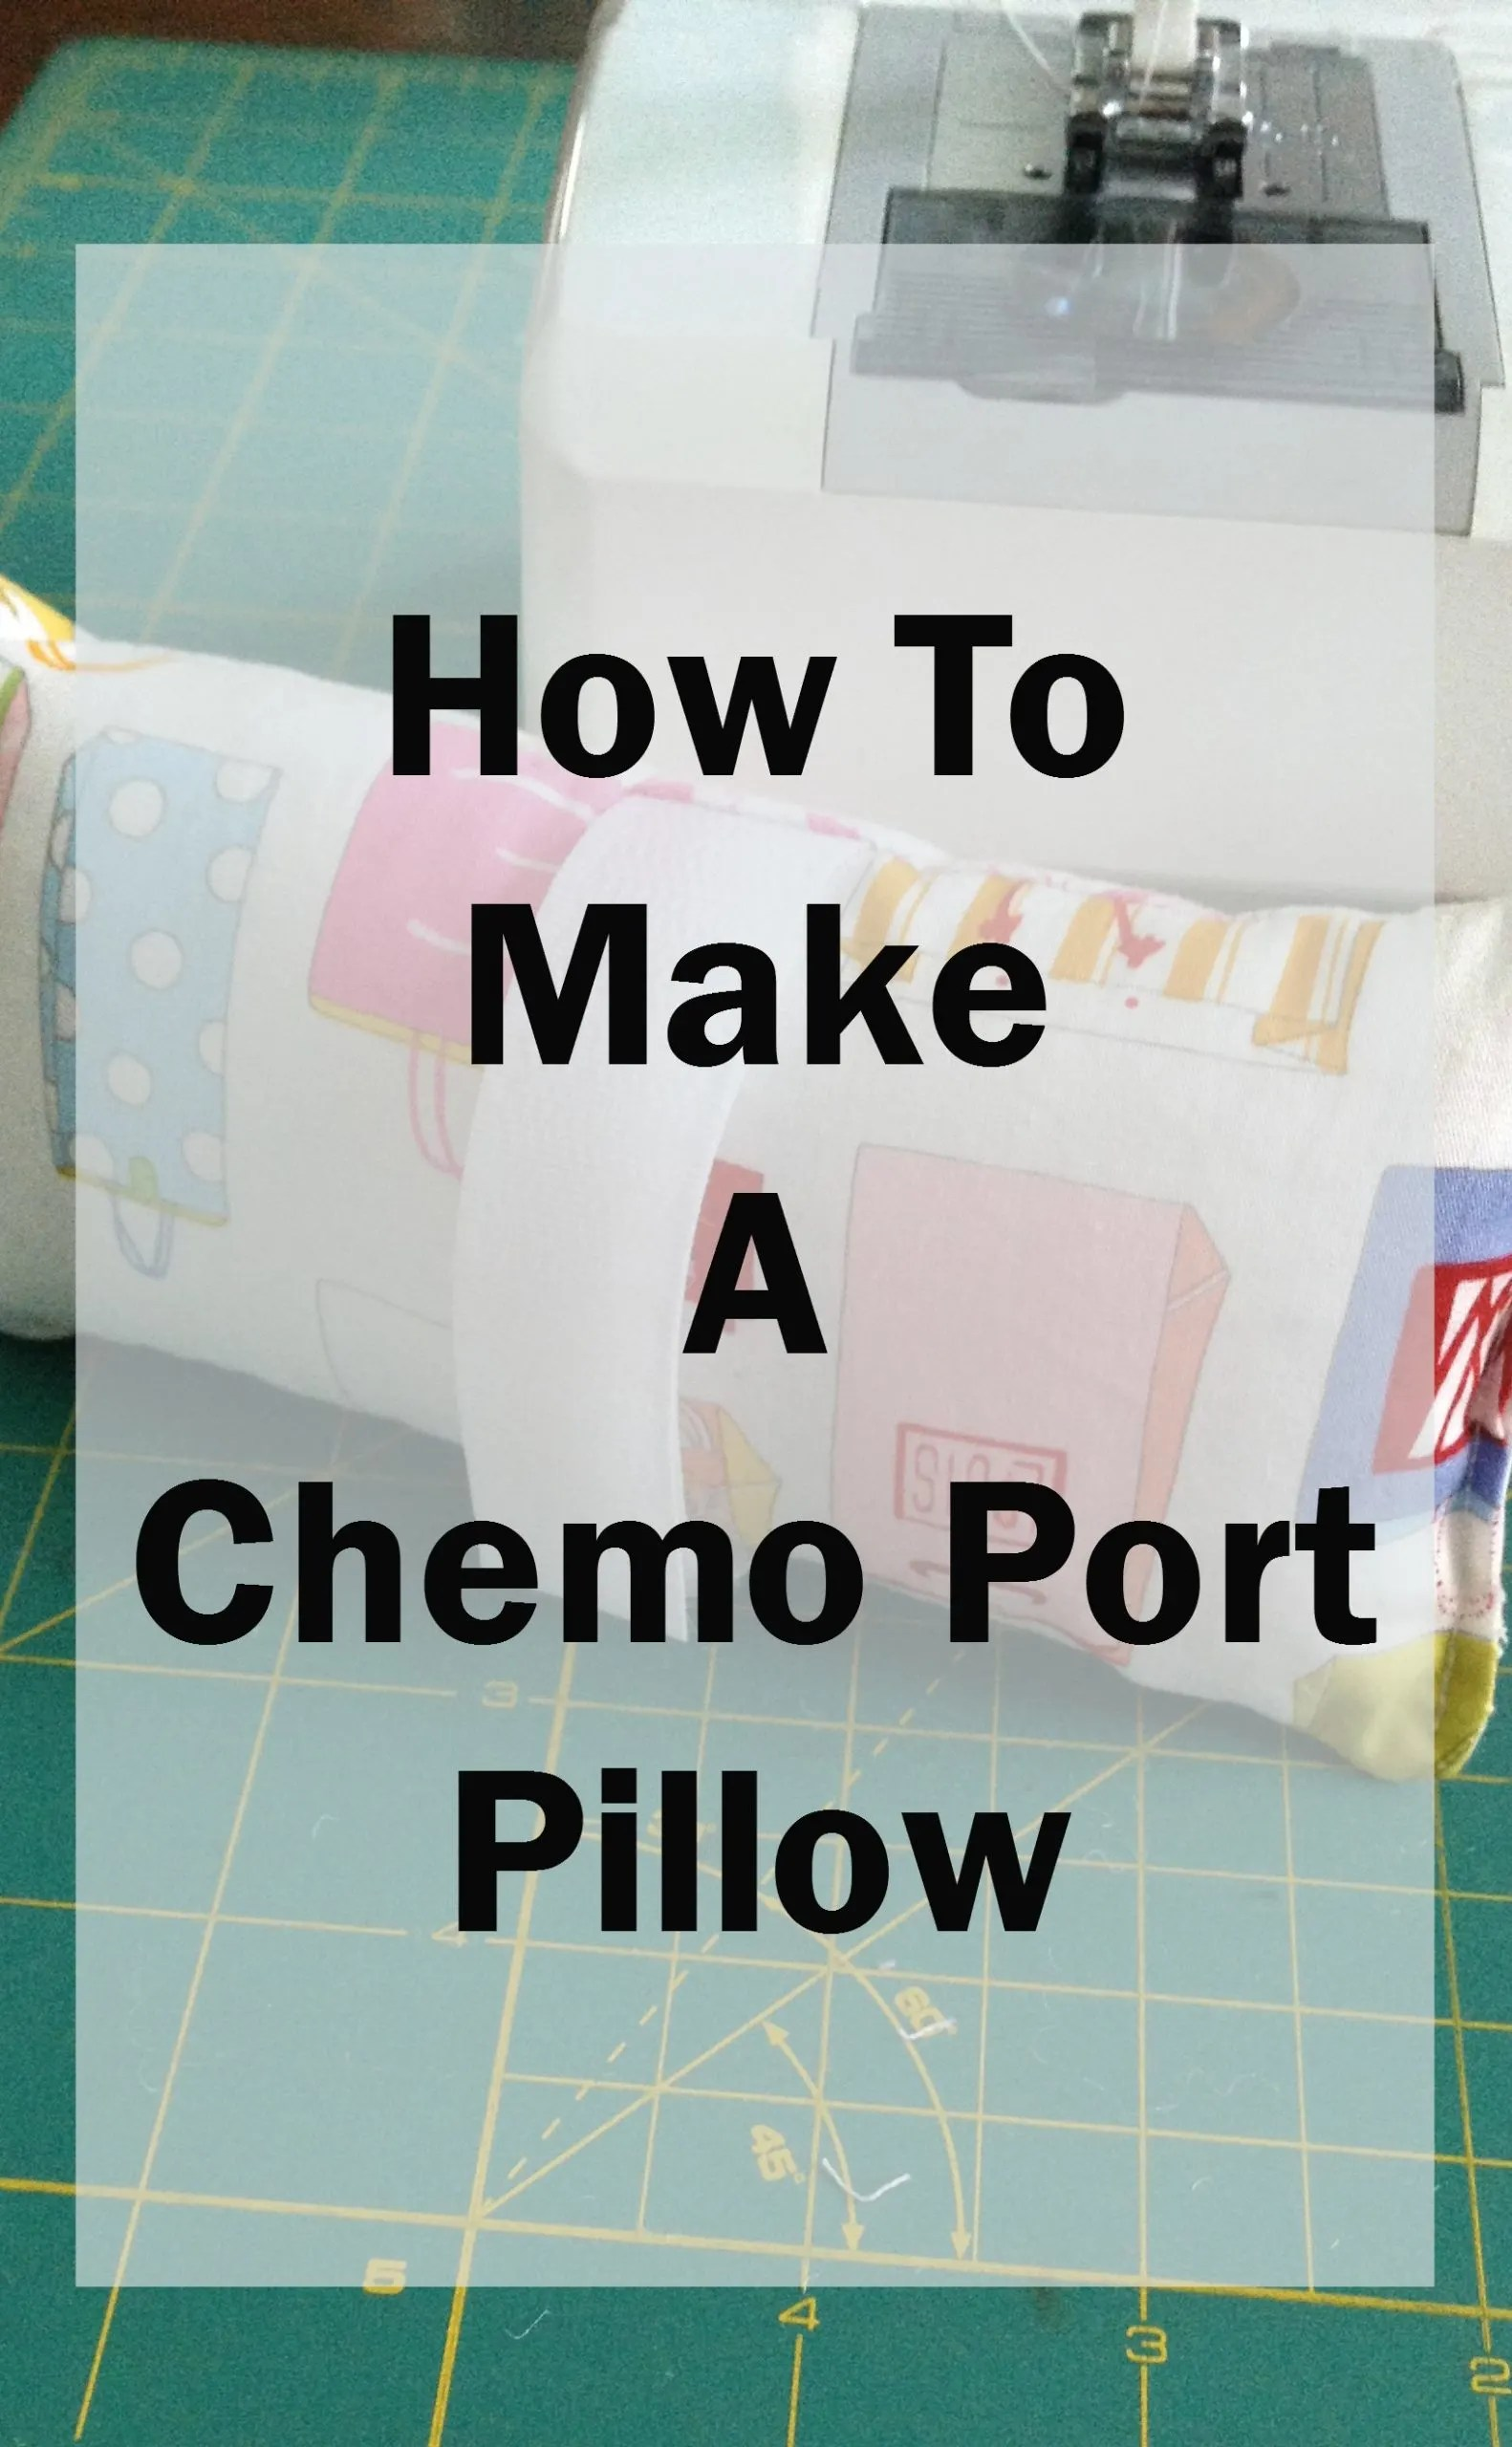 how to make a chemo port pillow